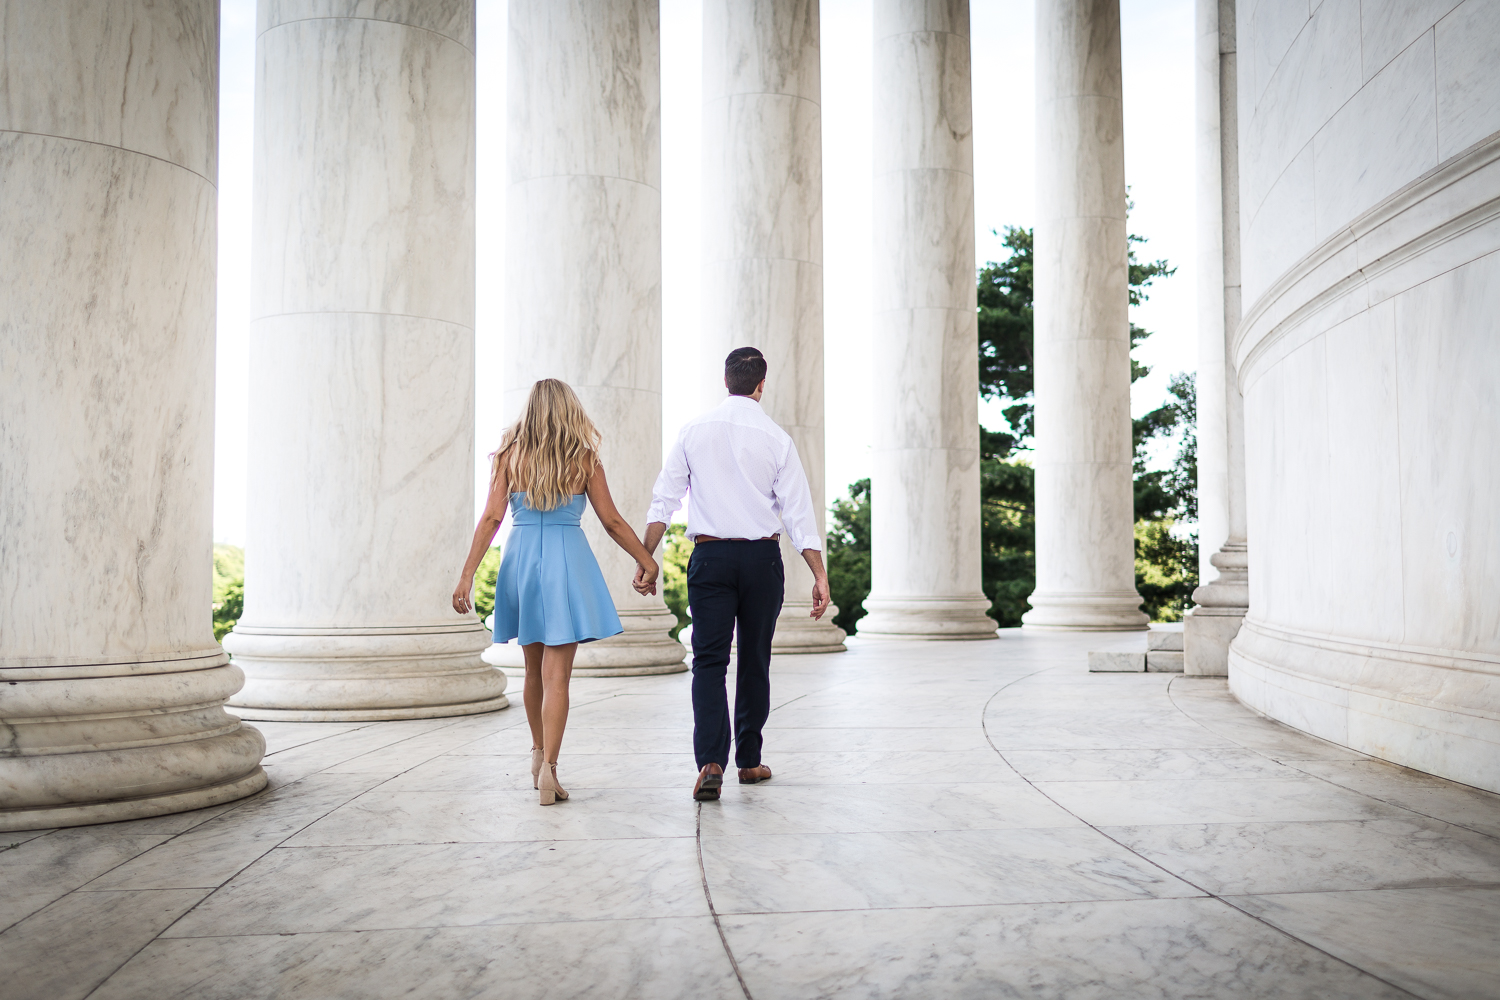 Washington DC Wedding Photographer - Brett Ludeke Photography, Based in Washington DC.